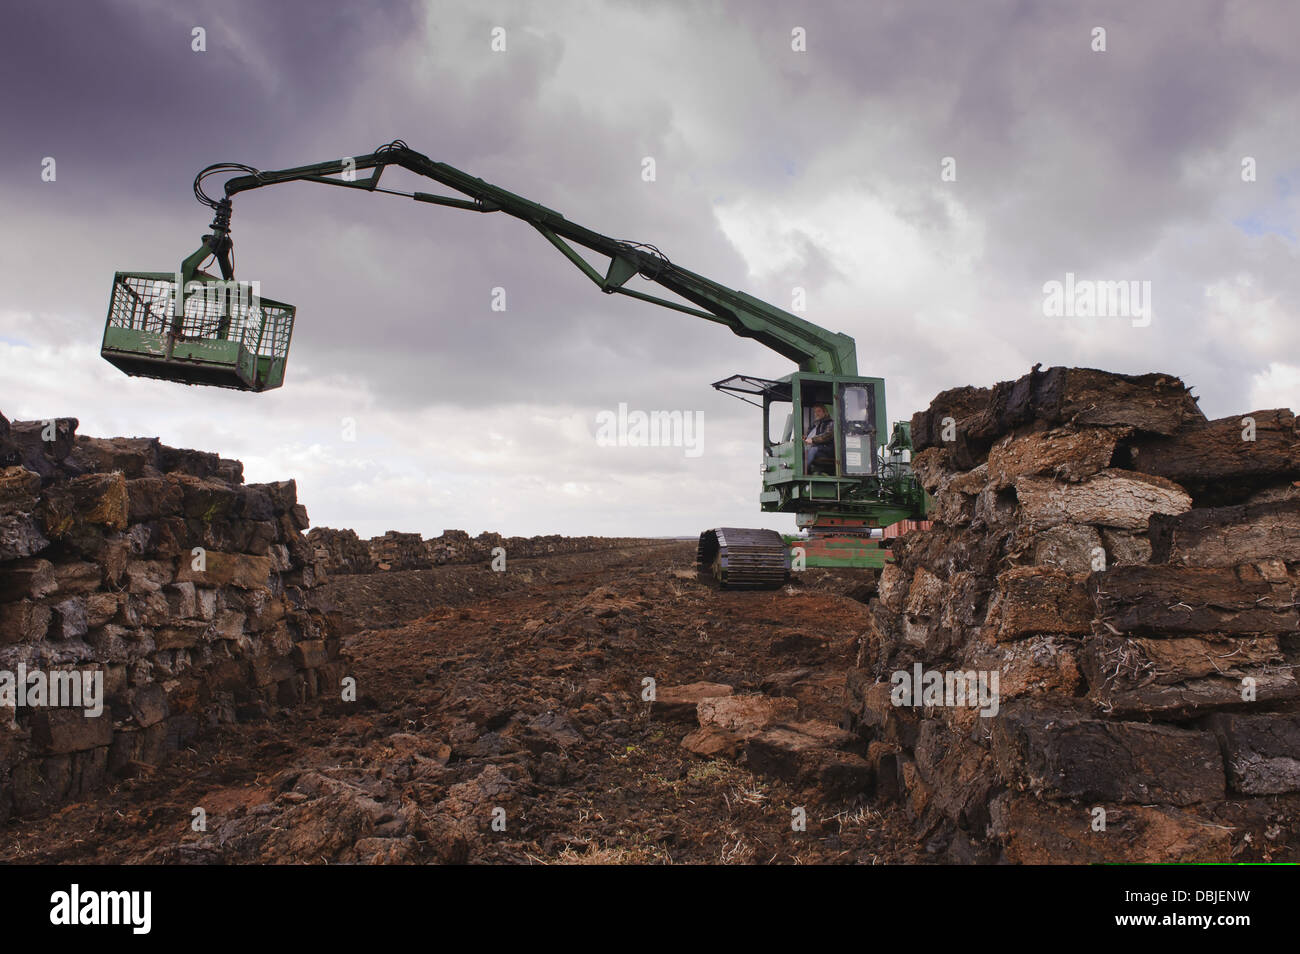 Peat extraction, Natura, Goldenstedt moor, Lower Saxony, Germany, Europe - Stock Image